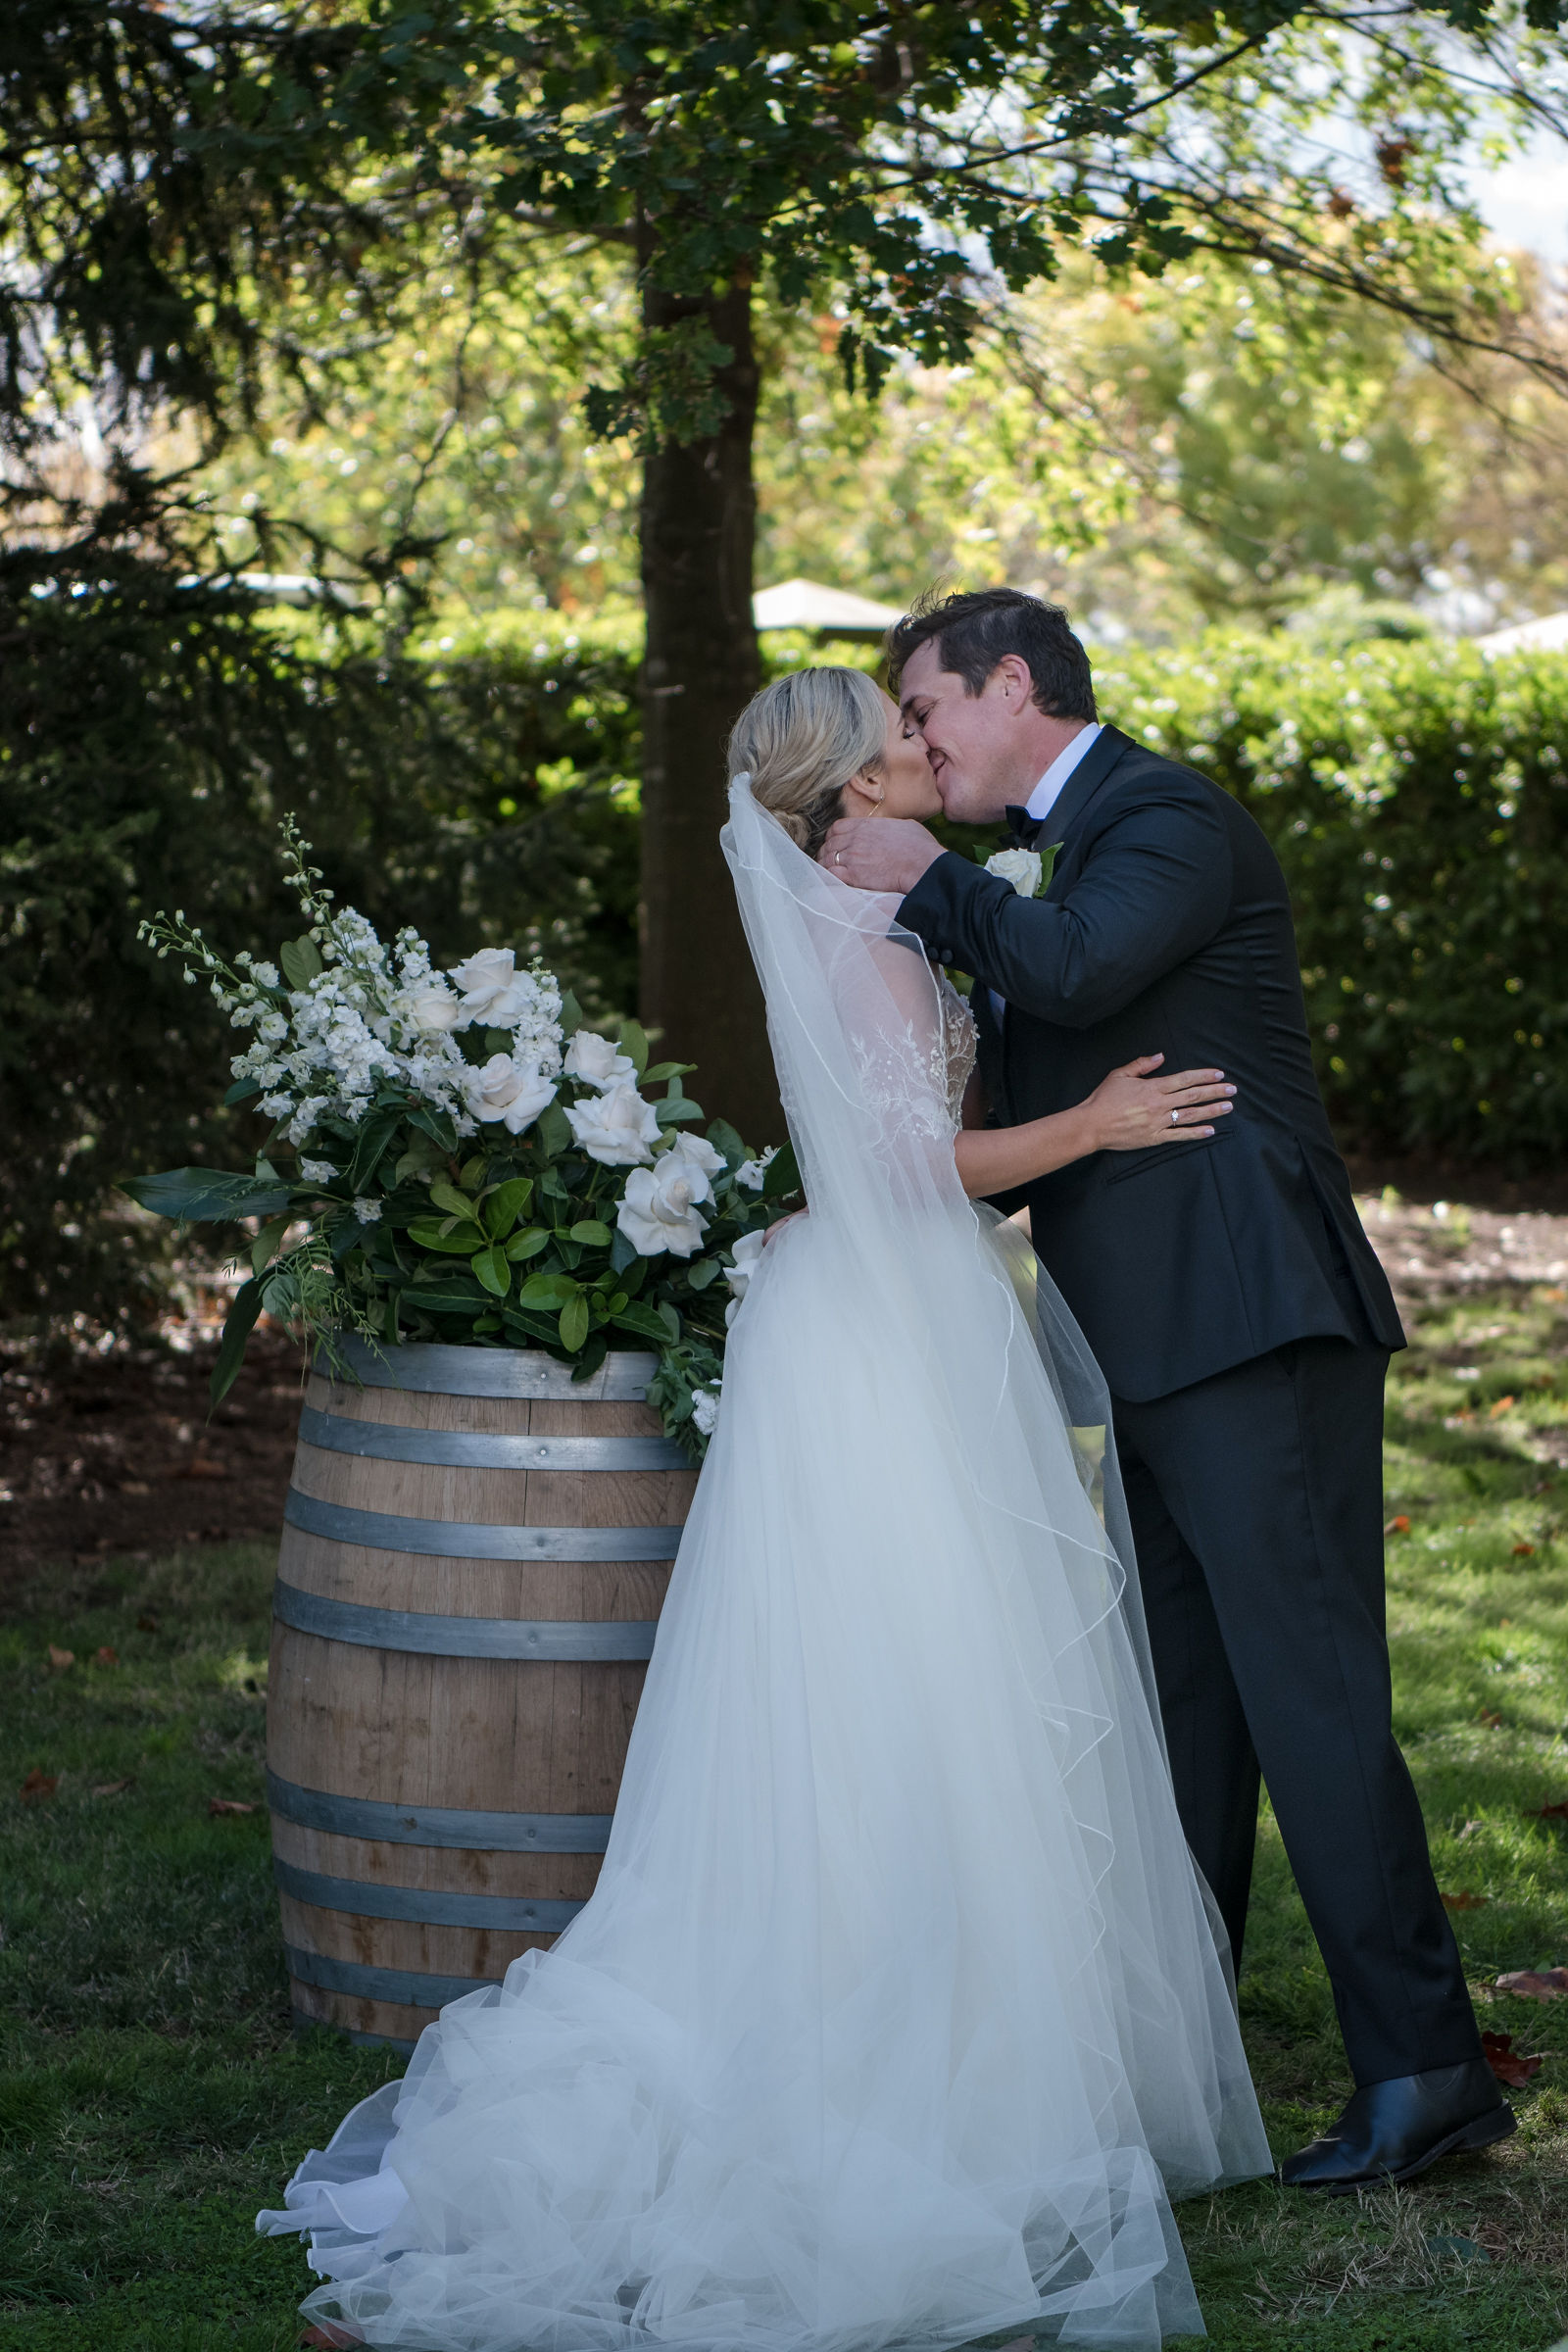 Jessica_Courtnie_Photography_Camilla+Jake-352.jpg